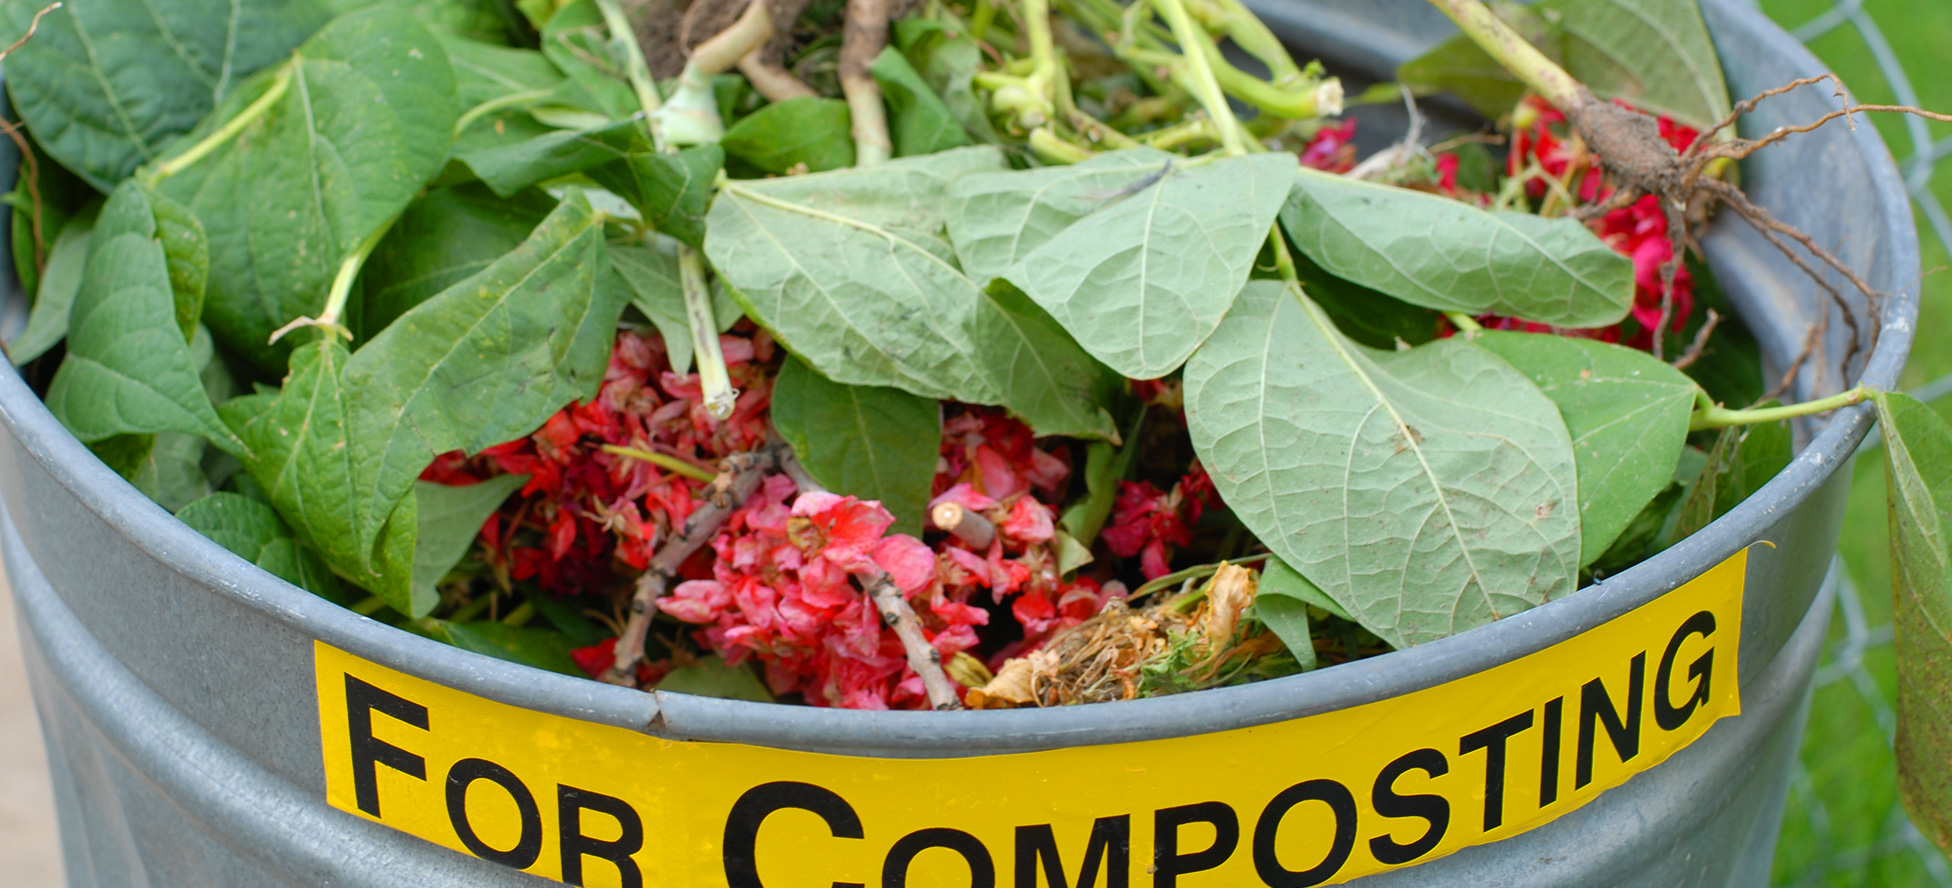 Metal container with plant clippings and food intended for compost pile